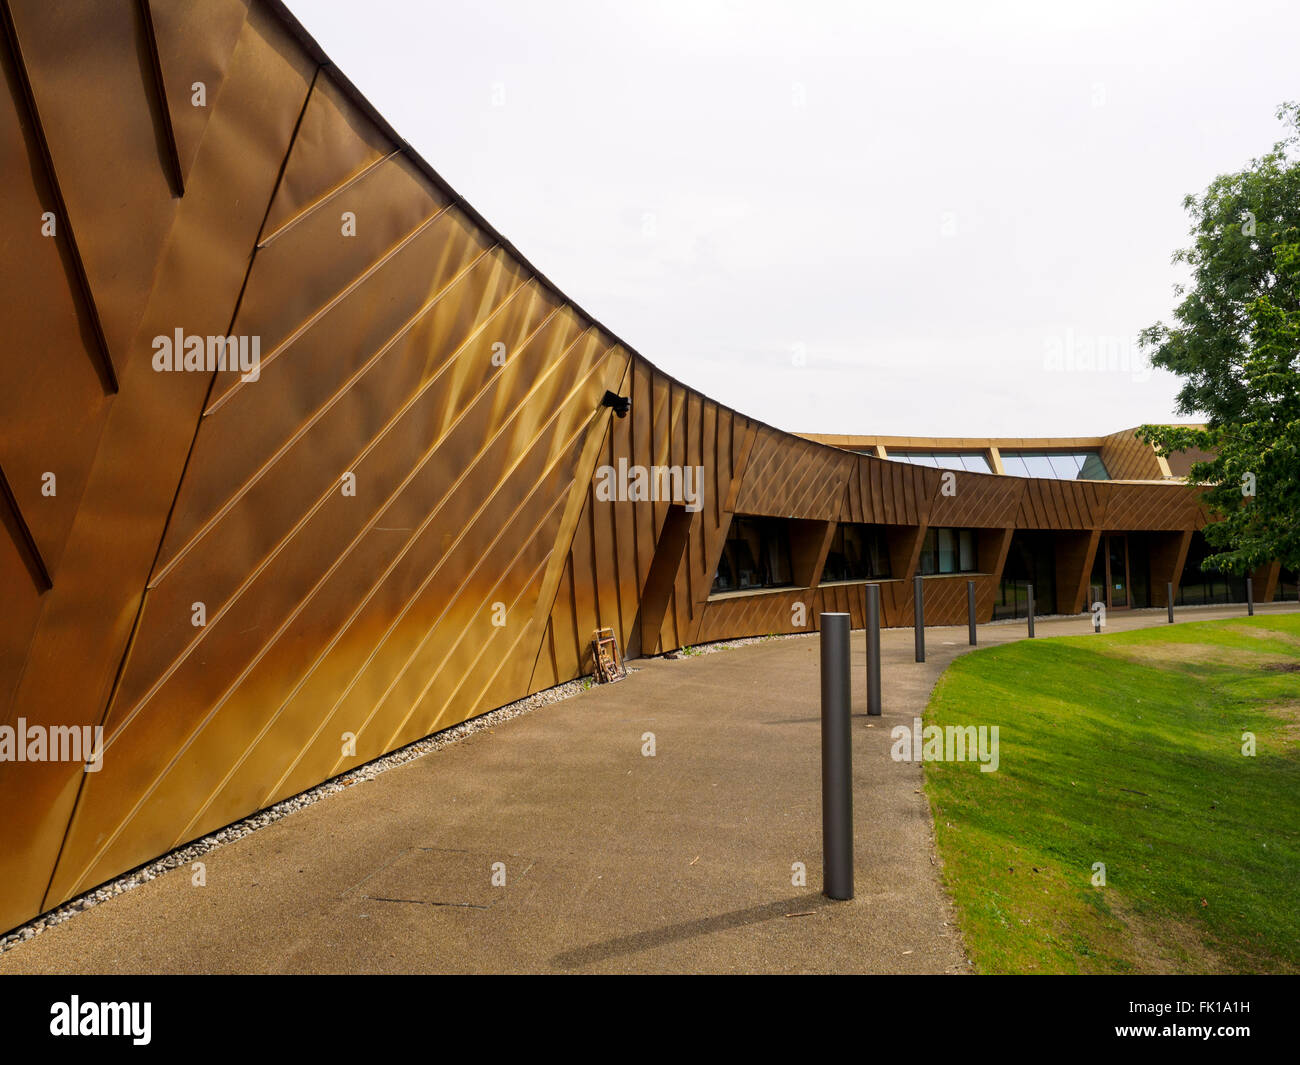 Firstsite Colchester centre for the visual arts - Colchester, Essex, England - Stock Image